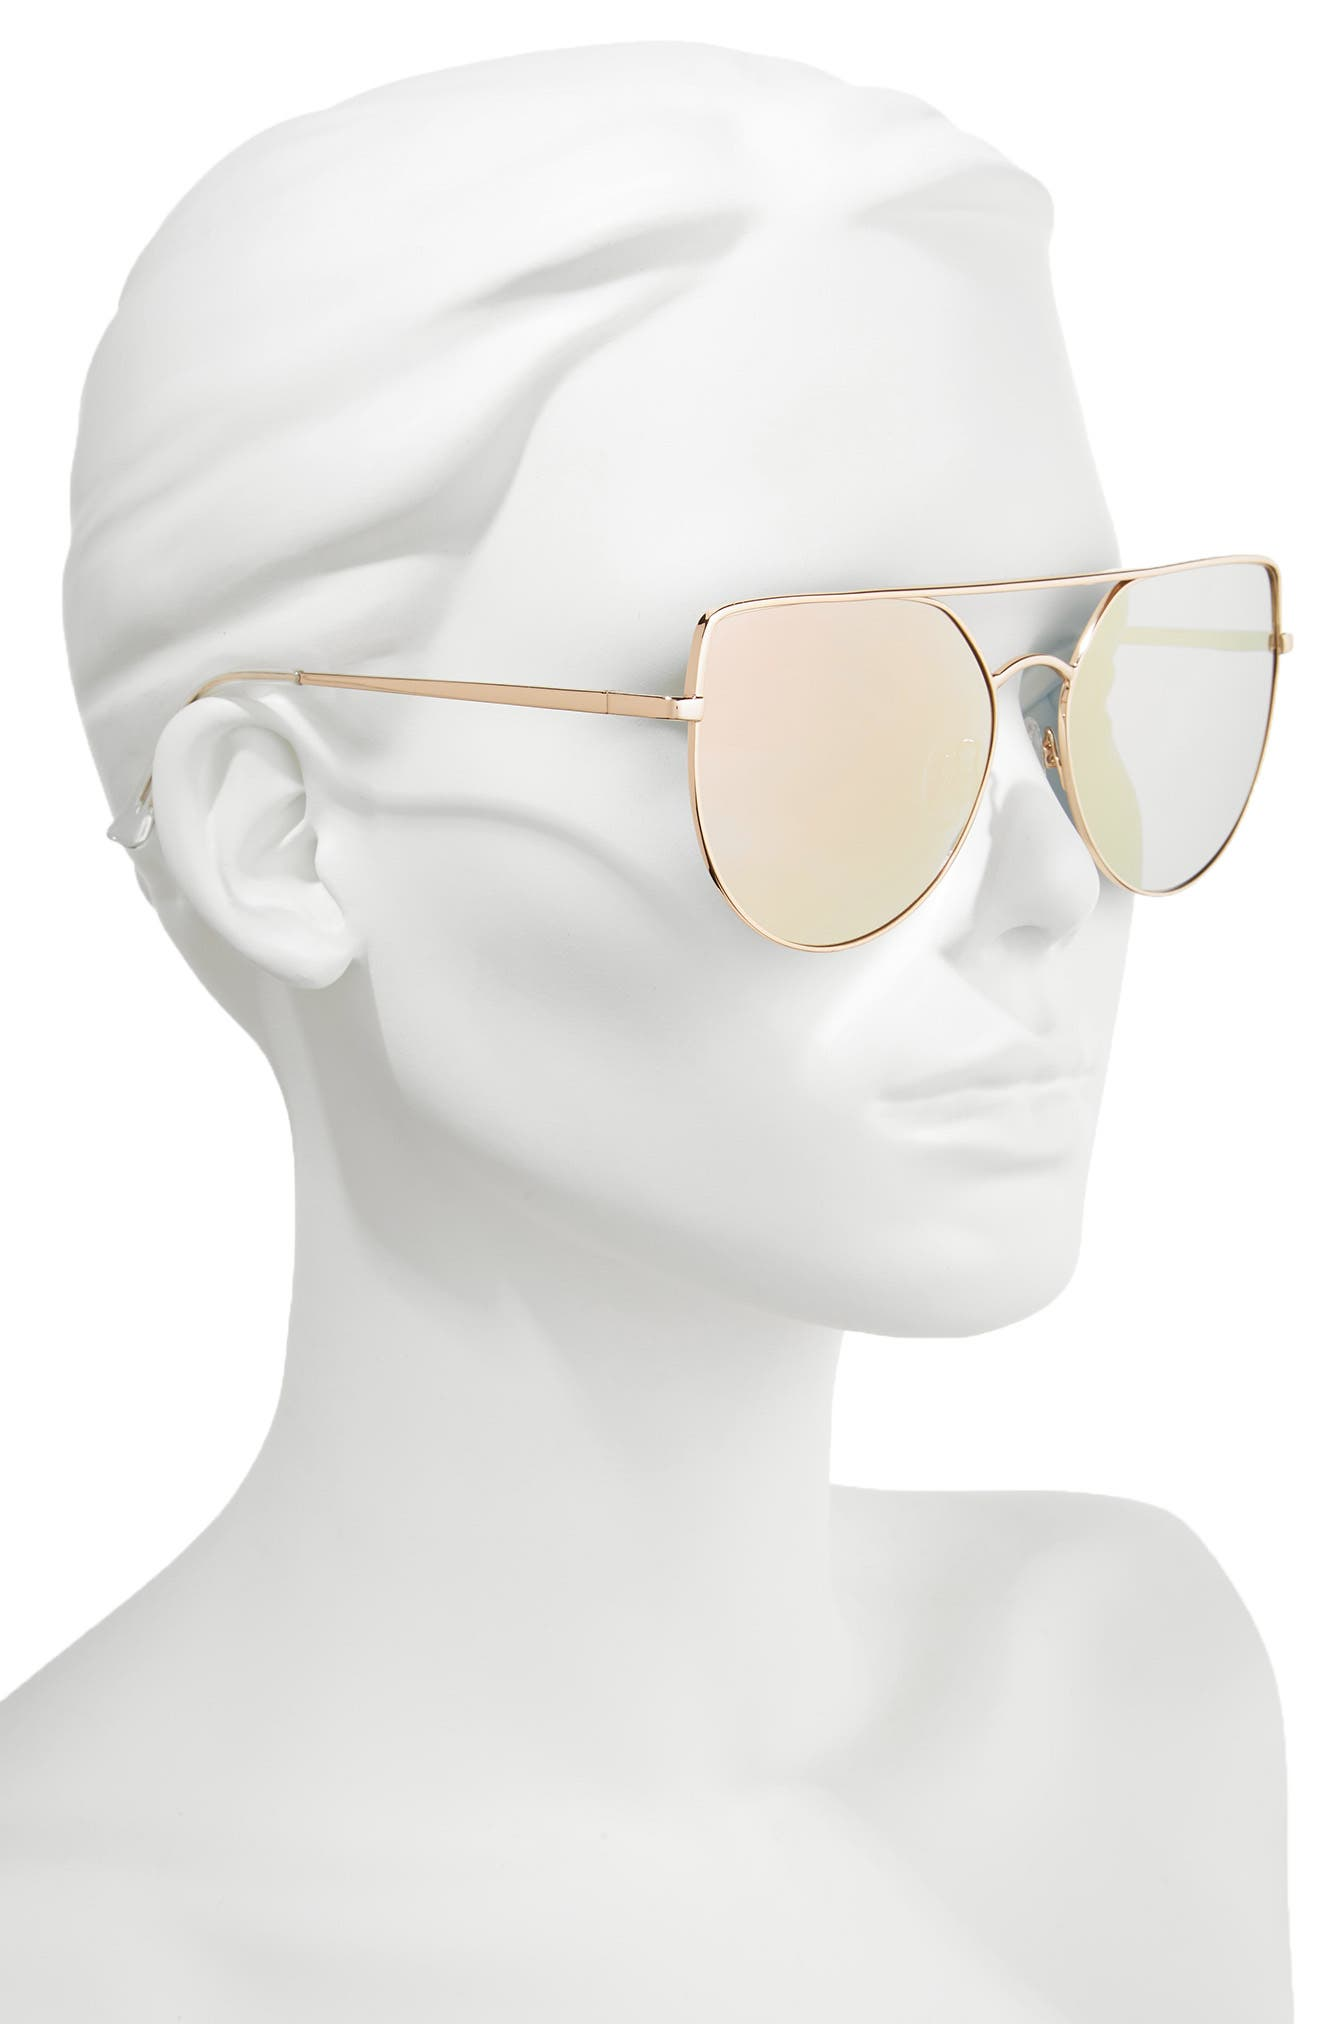 60mm Aviator Sunglasses,                             Alternate thumbnail 2, color,                             Gold/ Light Pink